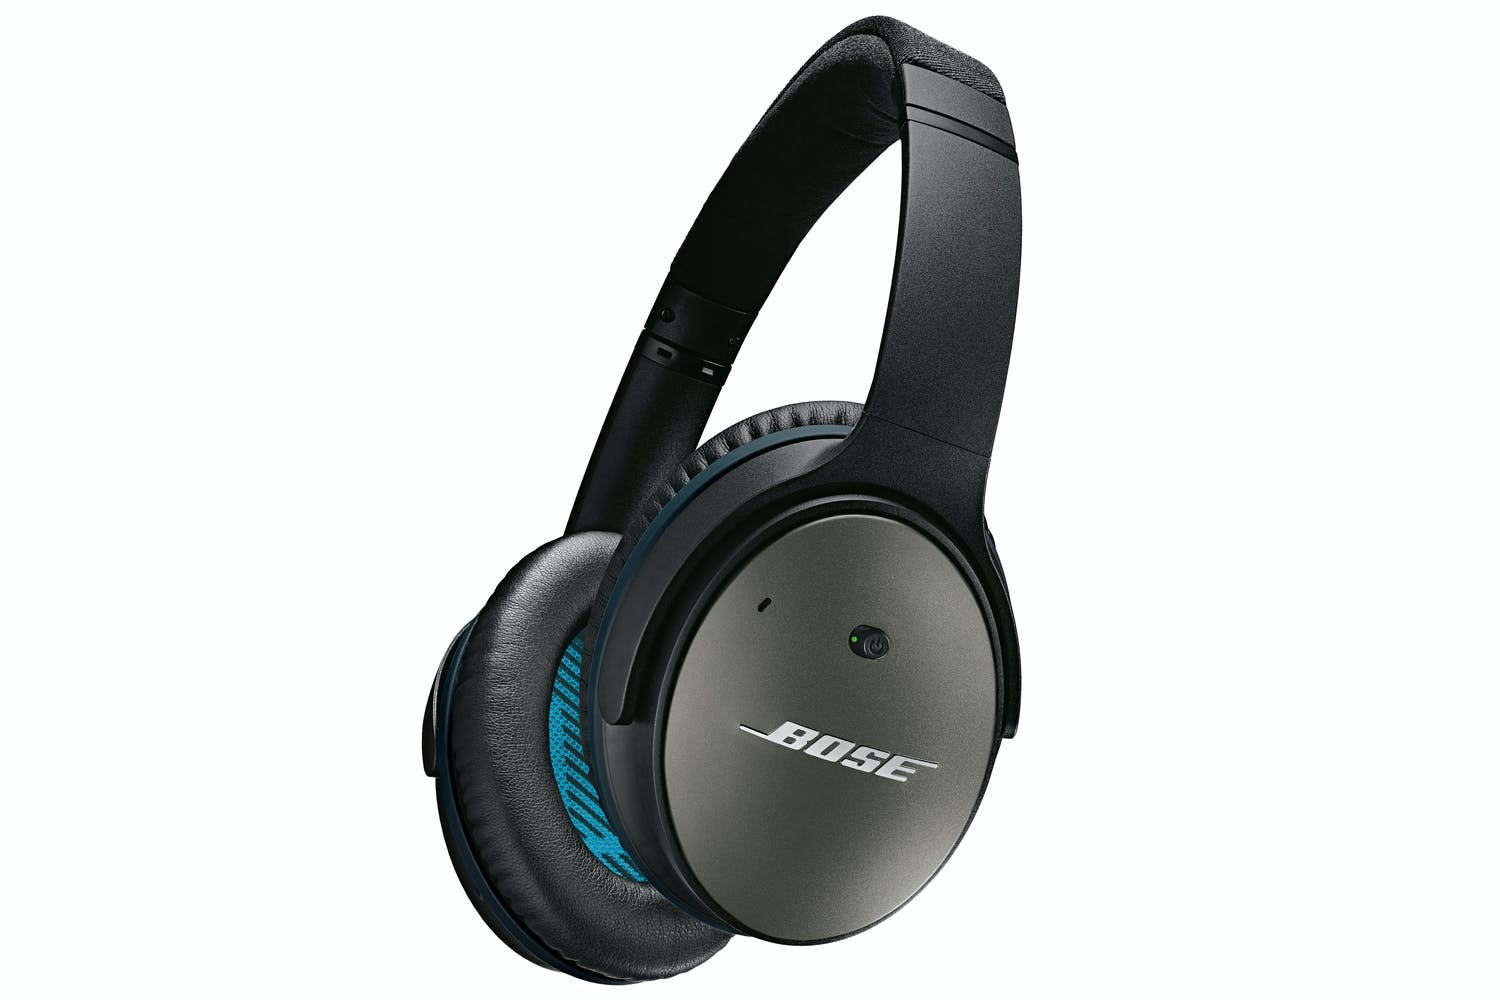 502160e6cf2 Bose QuietComfort Headphones | QC25 | Ireland